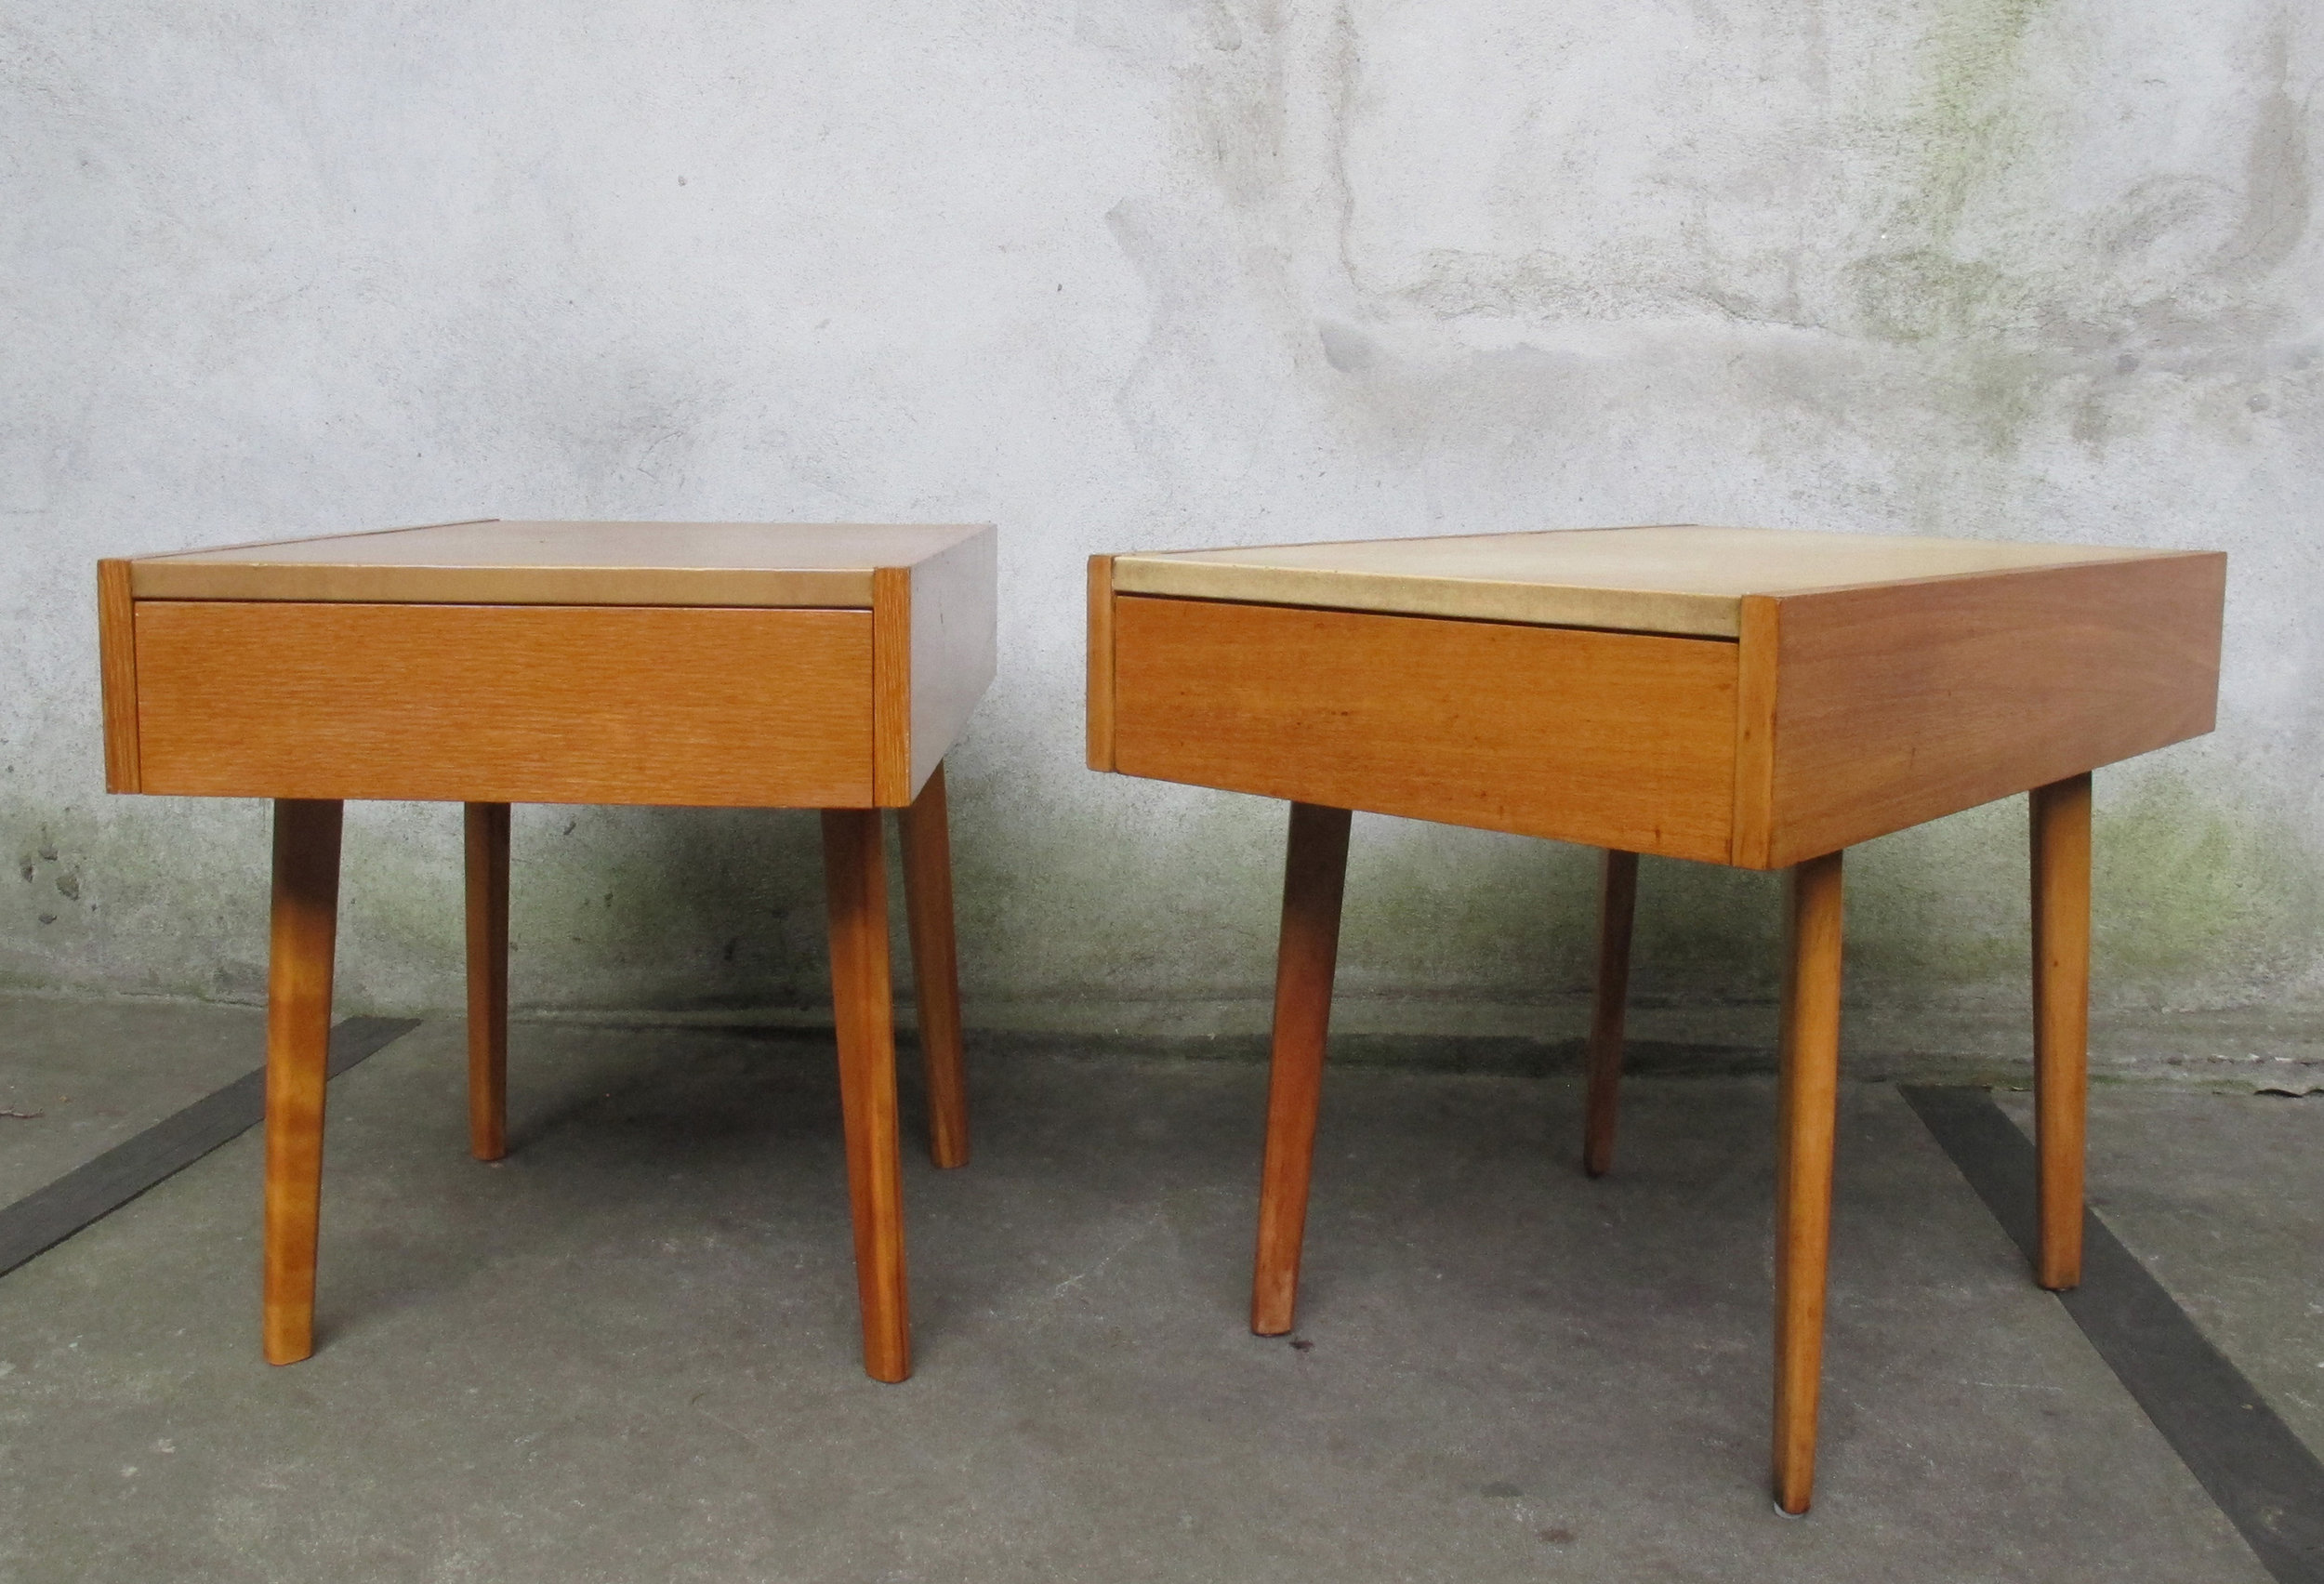 PAIR OF MID CENTURY GEROGE NELSON SIDE TABLES BY HERMAN MILLER